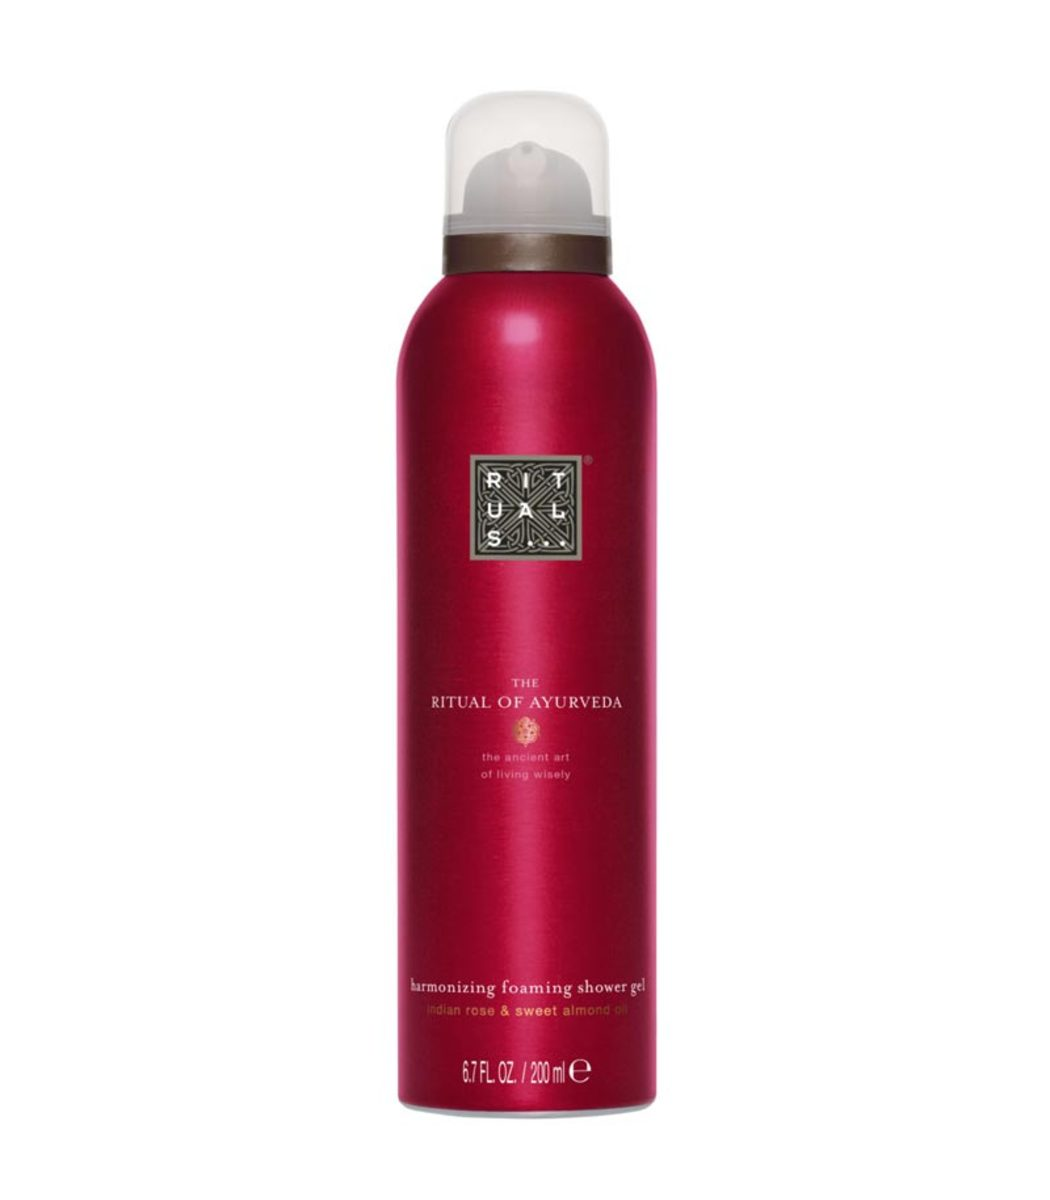 RITUALS The Ritual of Ayurveda Foaming Shower Gel